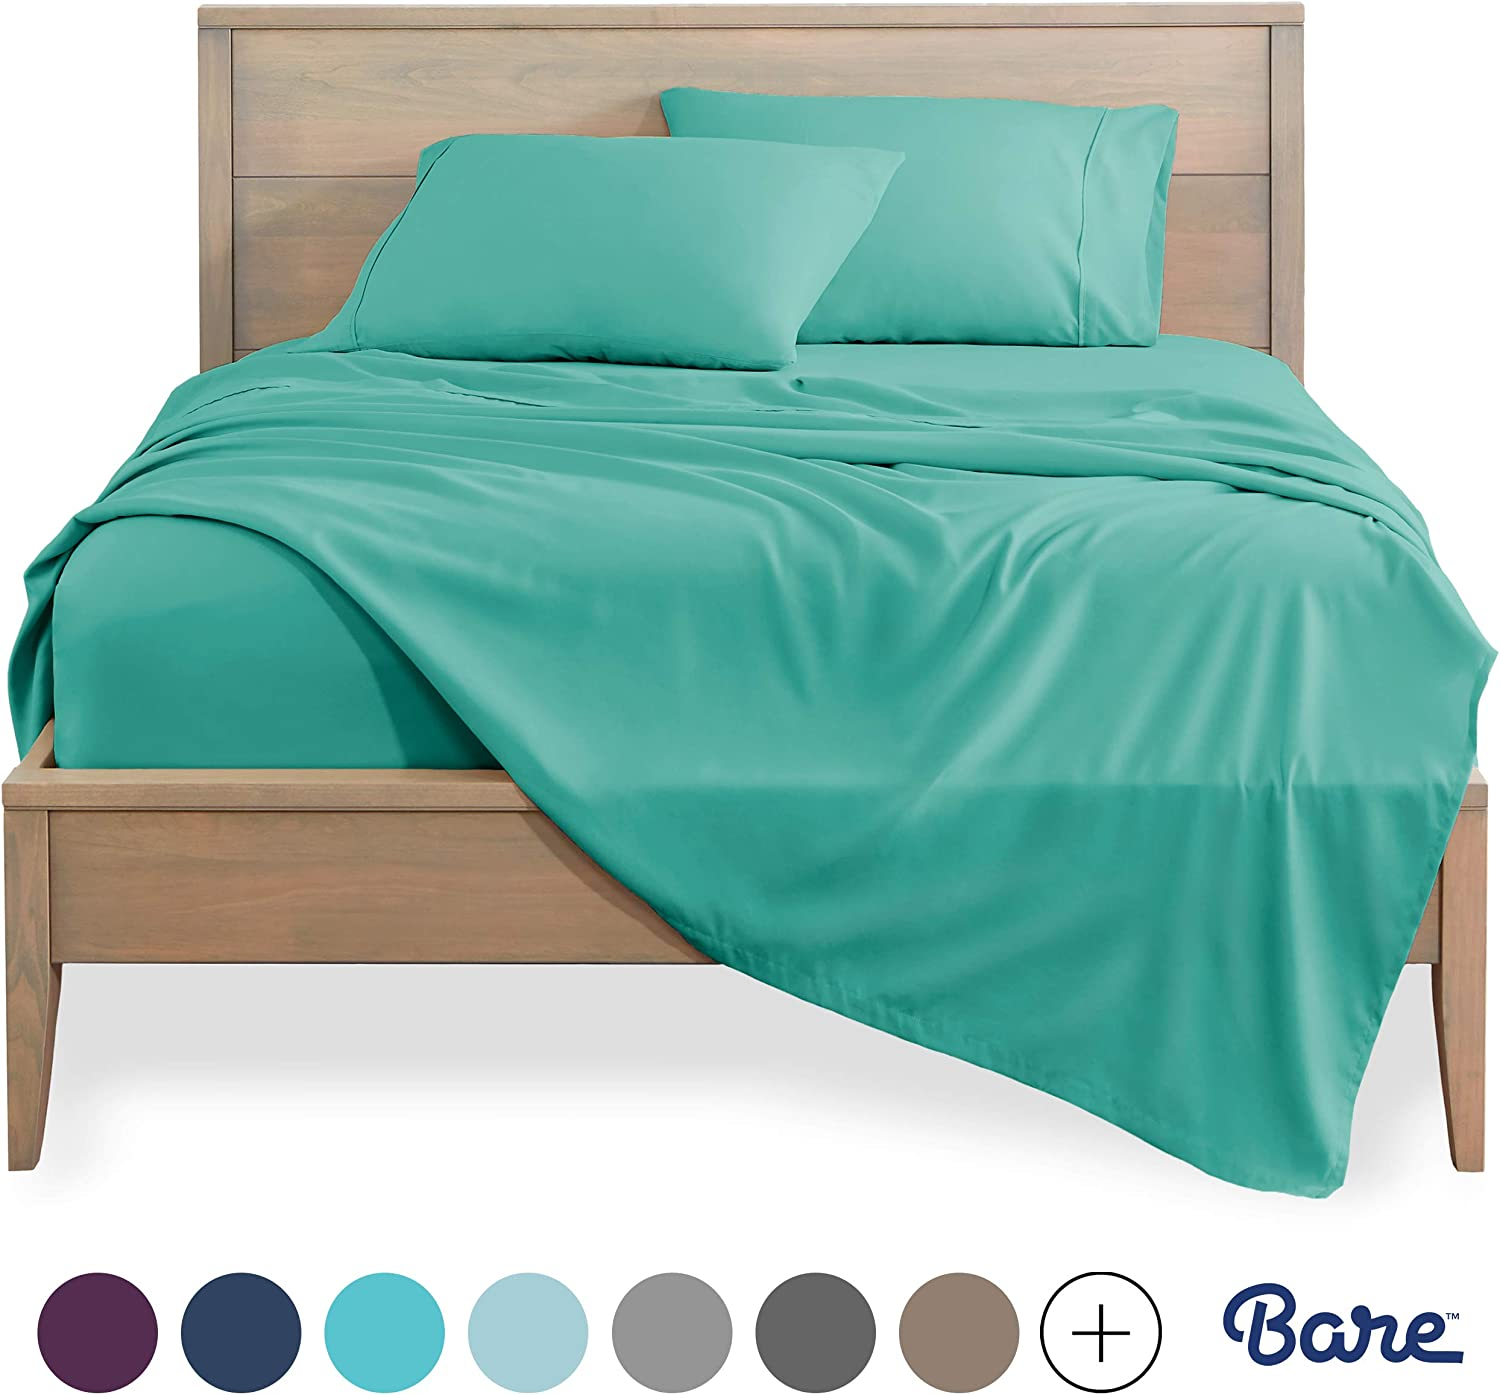 Bare Home Full XL Sheet Set - Kids Size - Premium 1800 Ultra-Soft Microfiber Sheets Full Extra Long - Double Brushed - Hypoallergenic - Wrinkle Resistant (Full XL, Turquoise)